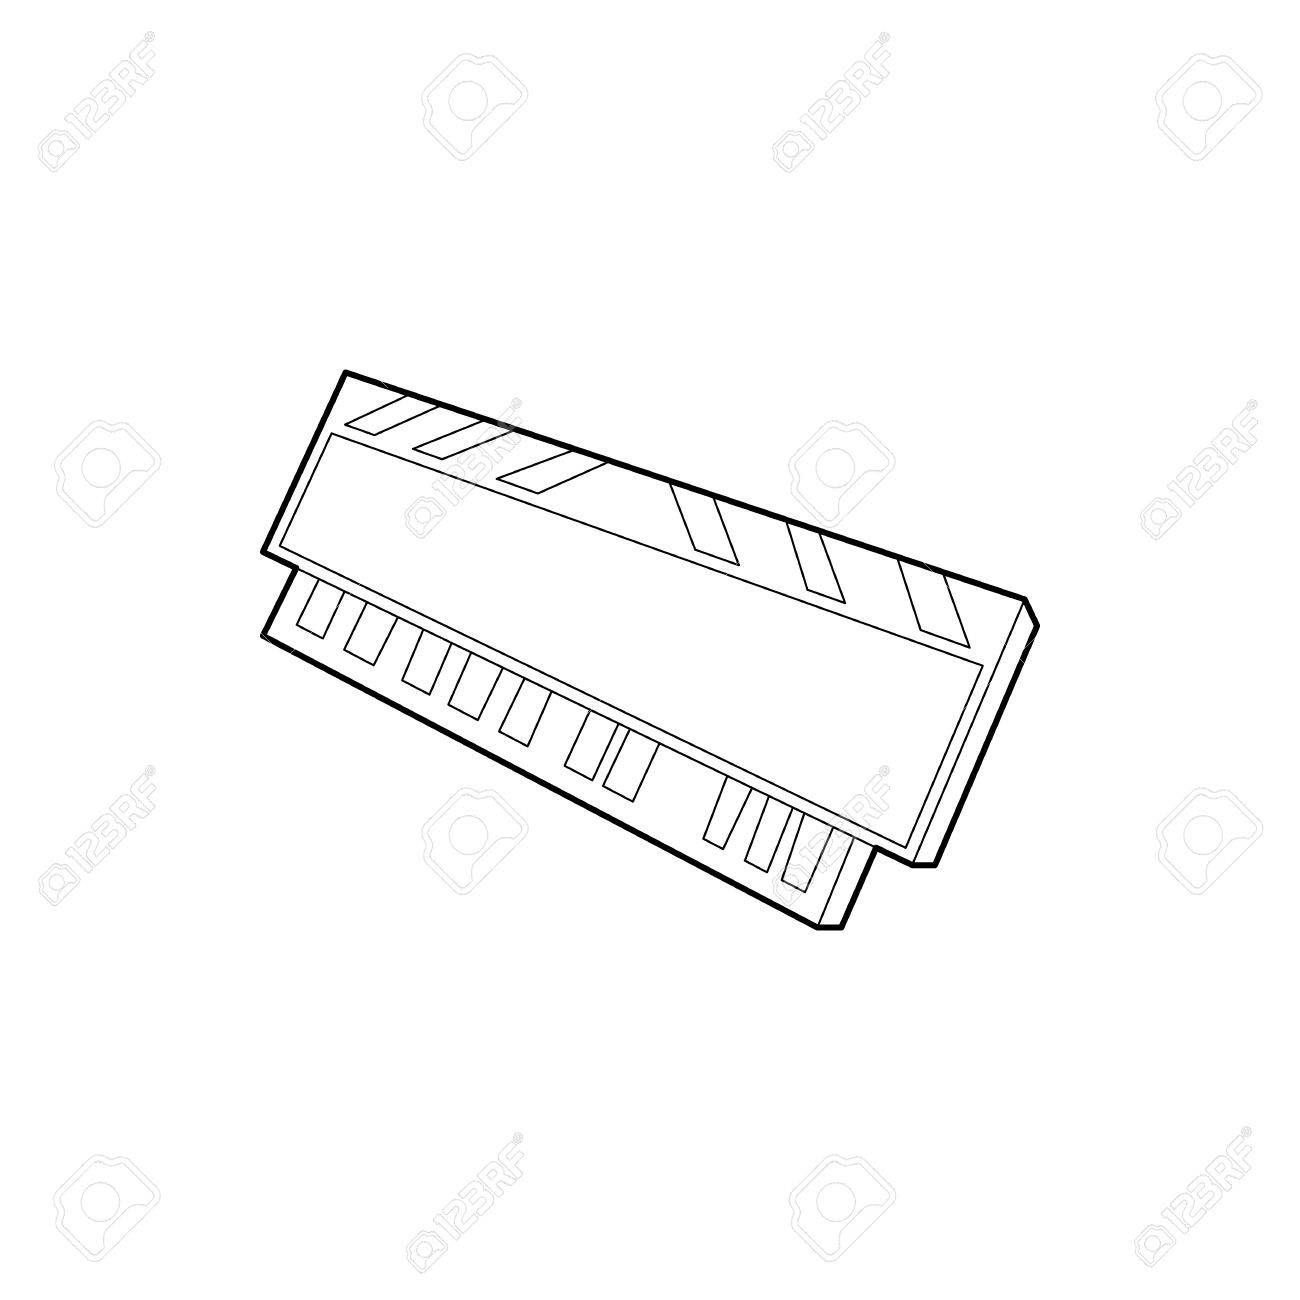 1300x1300 Dvd Ram Module For The Personal Computer Icon In Outline Style